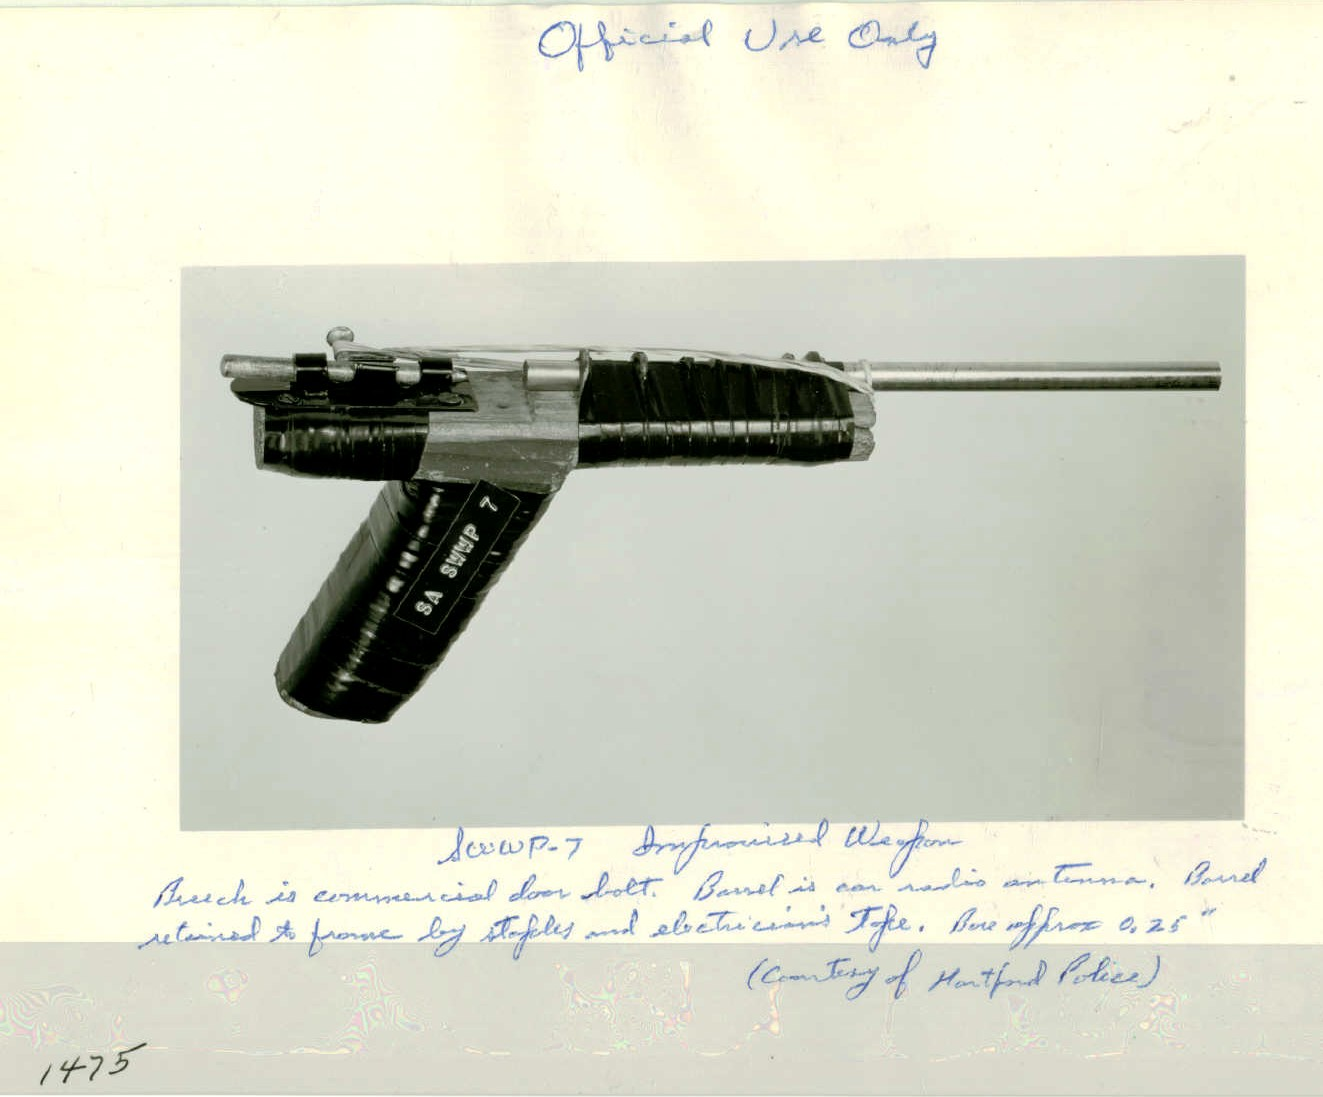 Improvised Firearms (Zip Guns) - Like Grandpa Used to Make -The